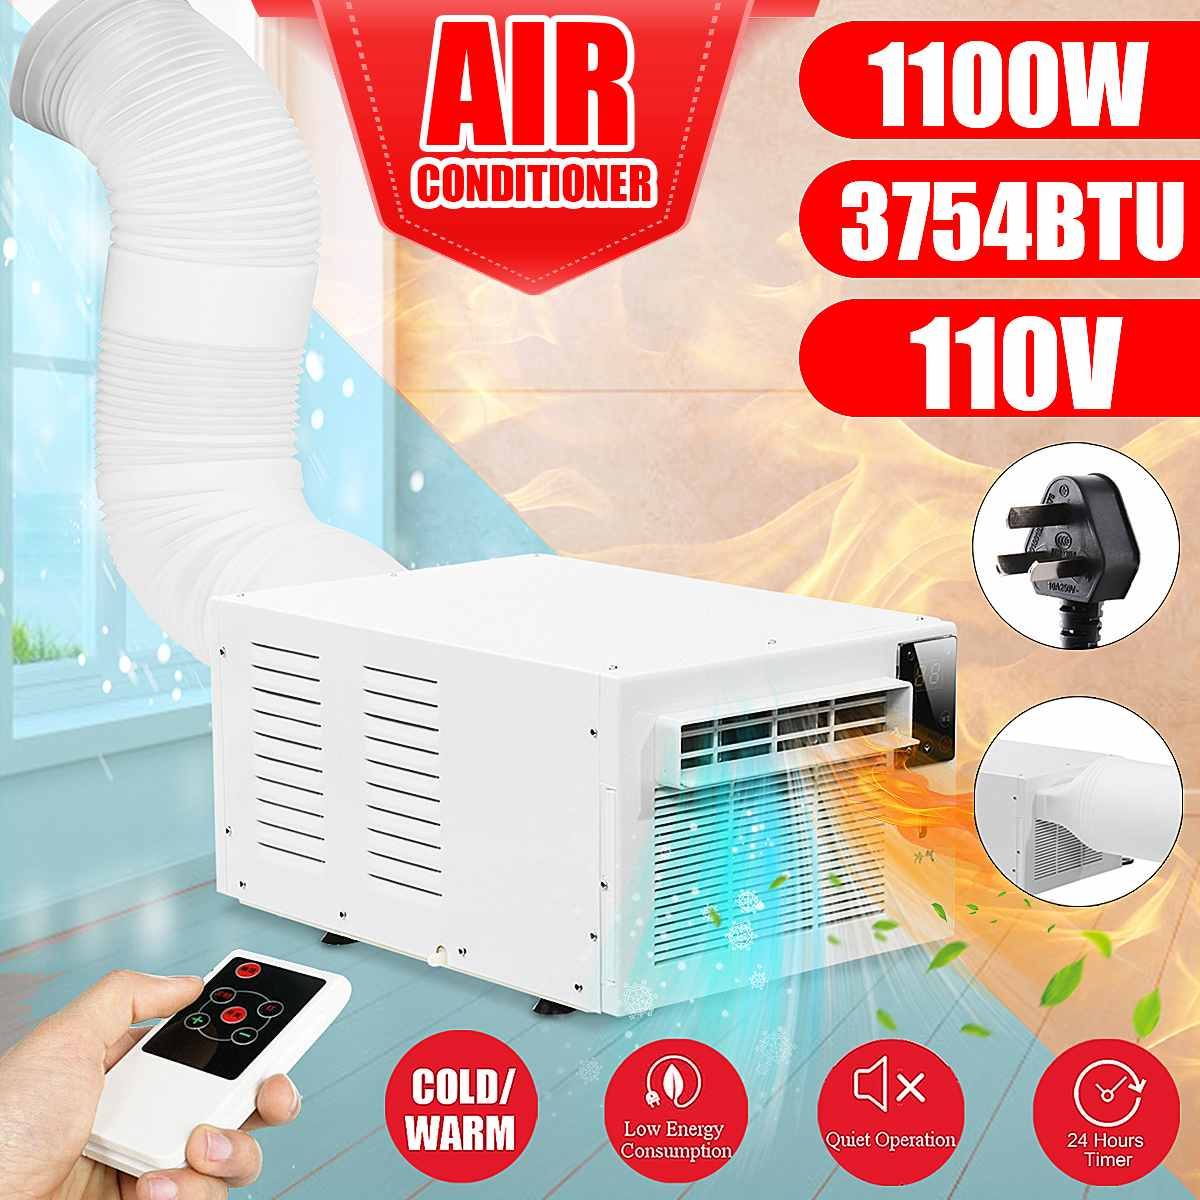 1100W Portable Air Conditioner 24-hour Timer 110V/AC 2 Gear Lighting LED Control Panel With Remote Control Cold/Heat Dual Use